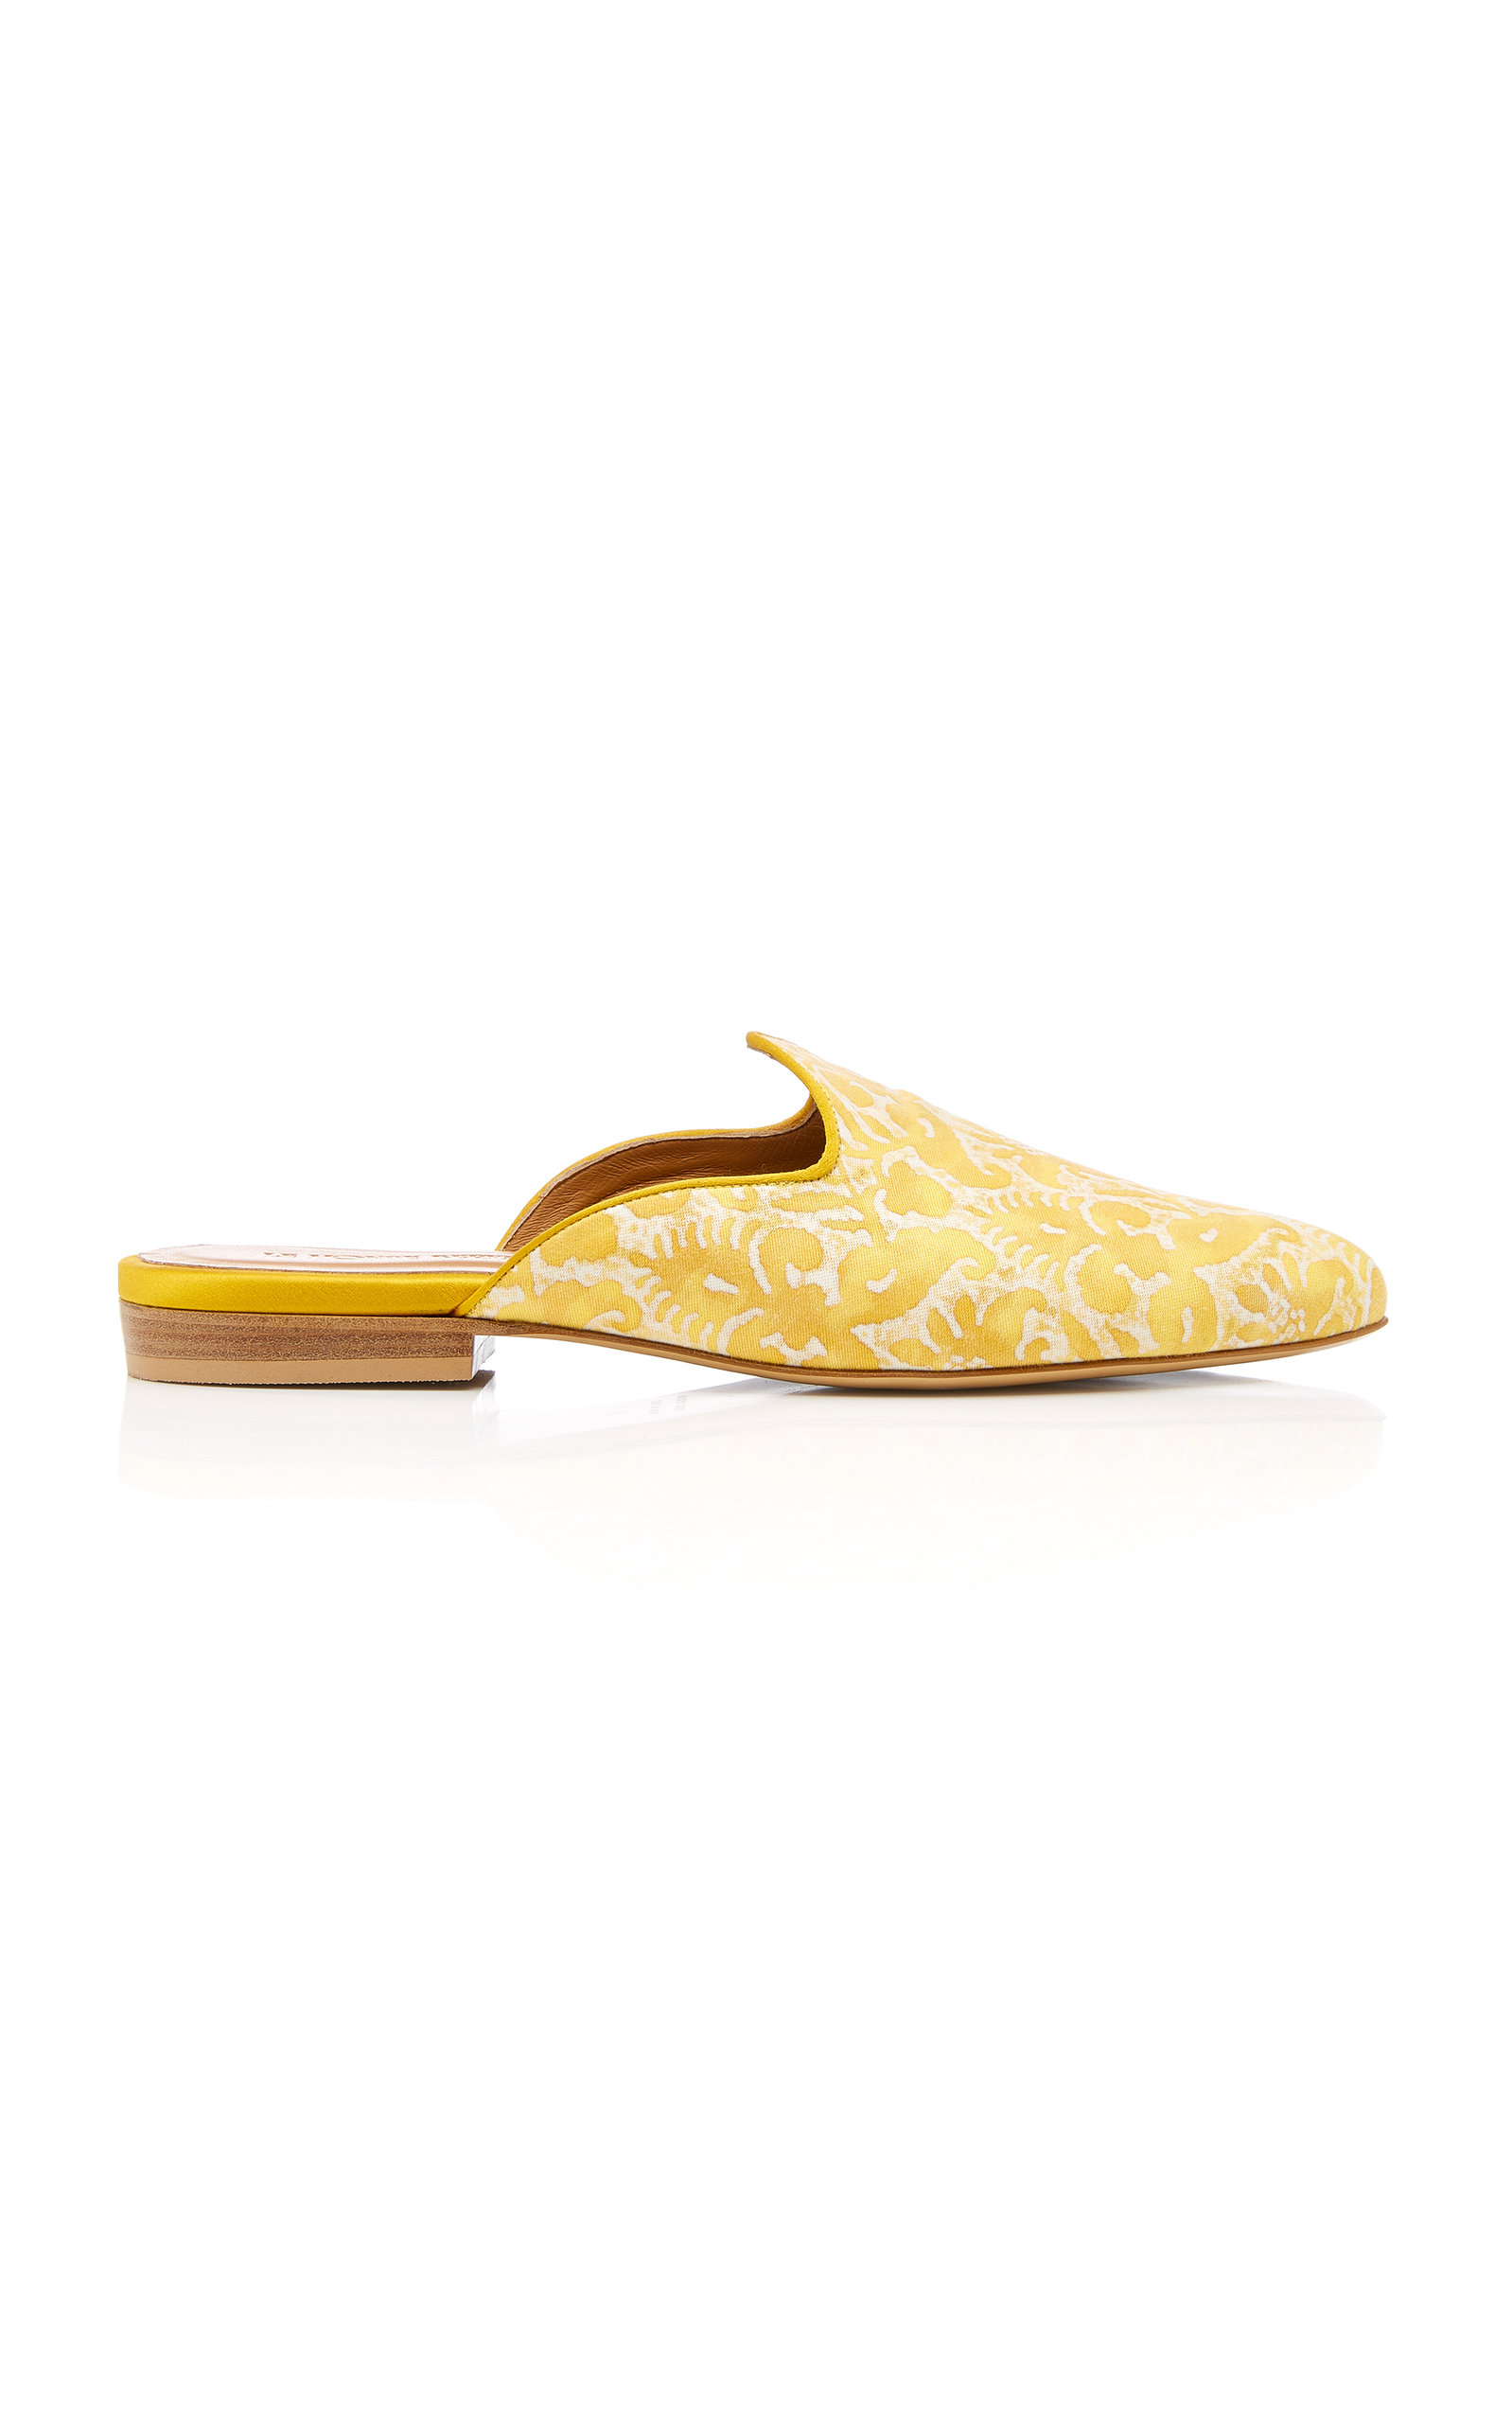 CABANA X LE MONDE BERYL IN COLLABORATION WITH FORTUNY FABRICS M'O Exclusive Delfino Fortuny Mules in Yellow